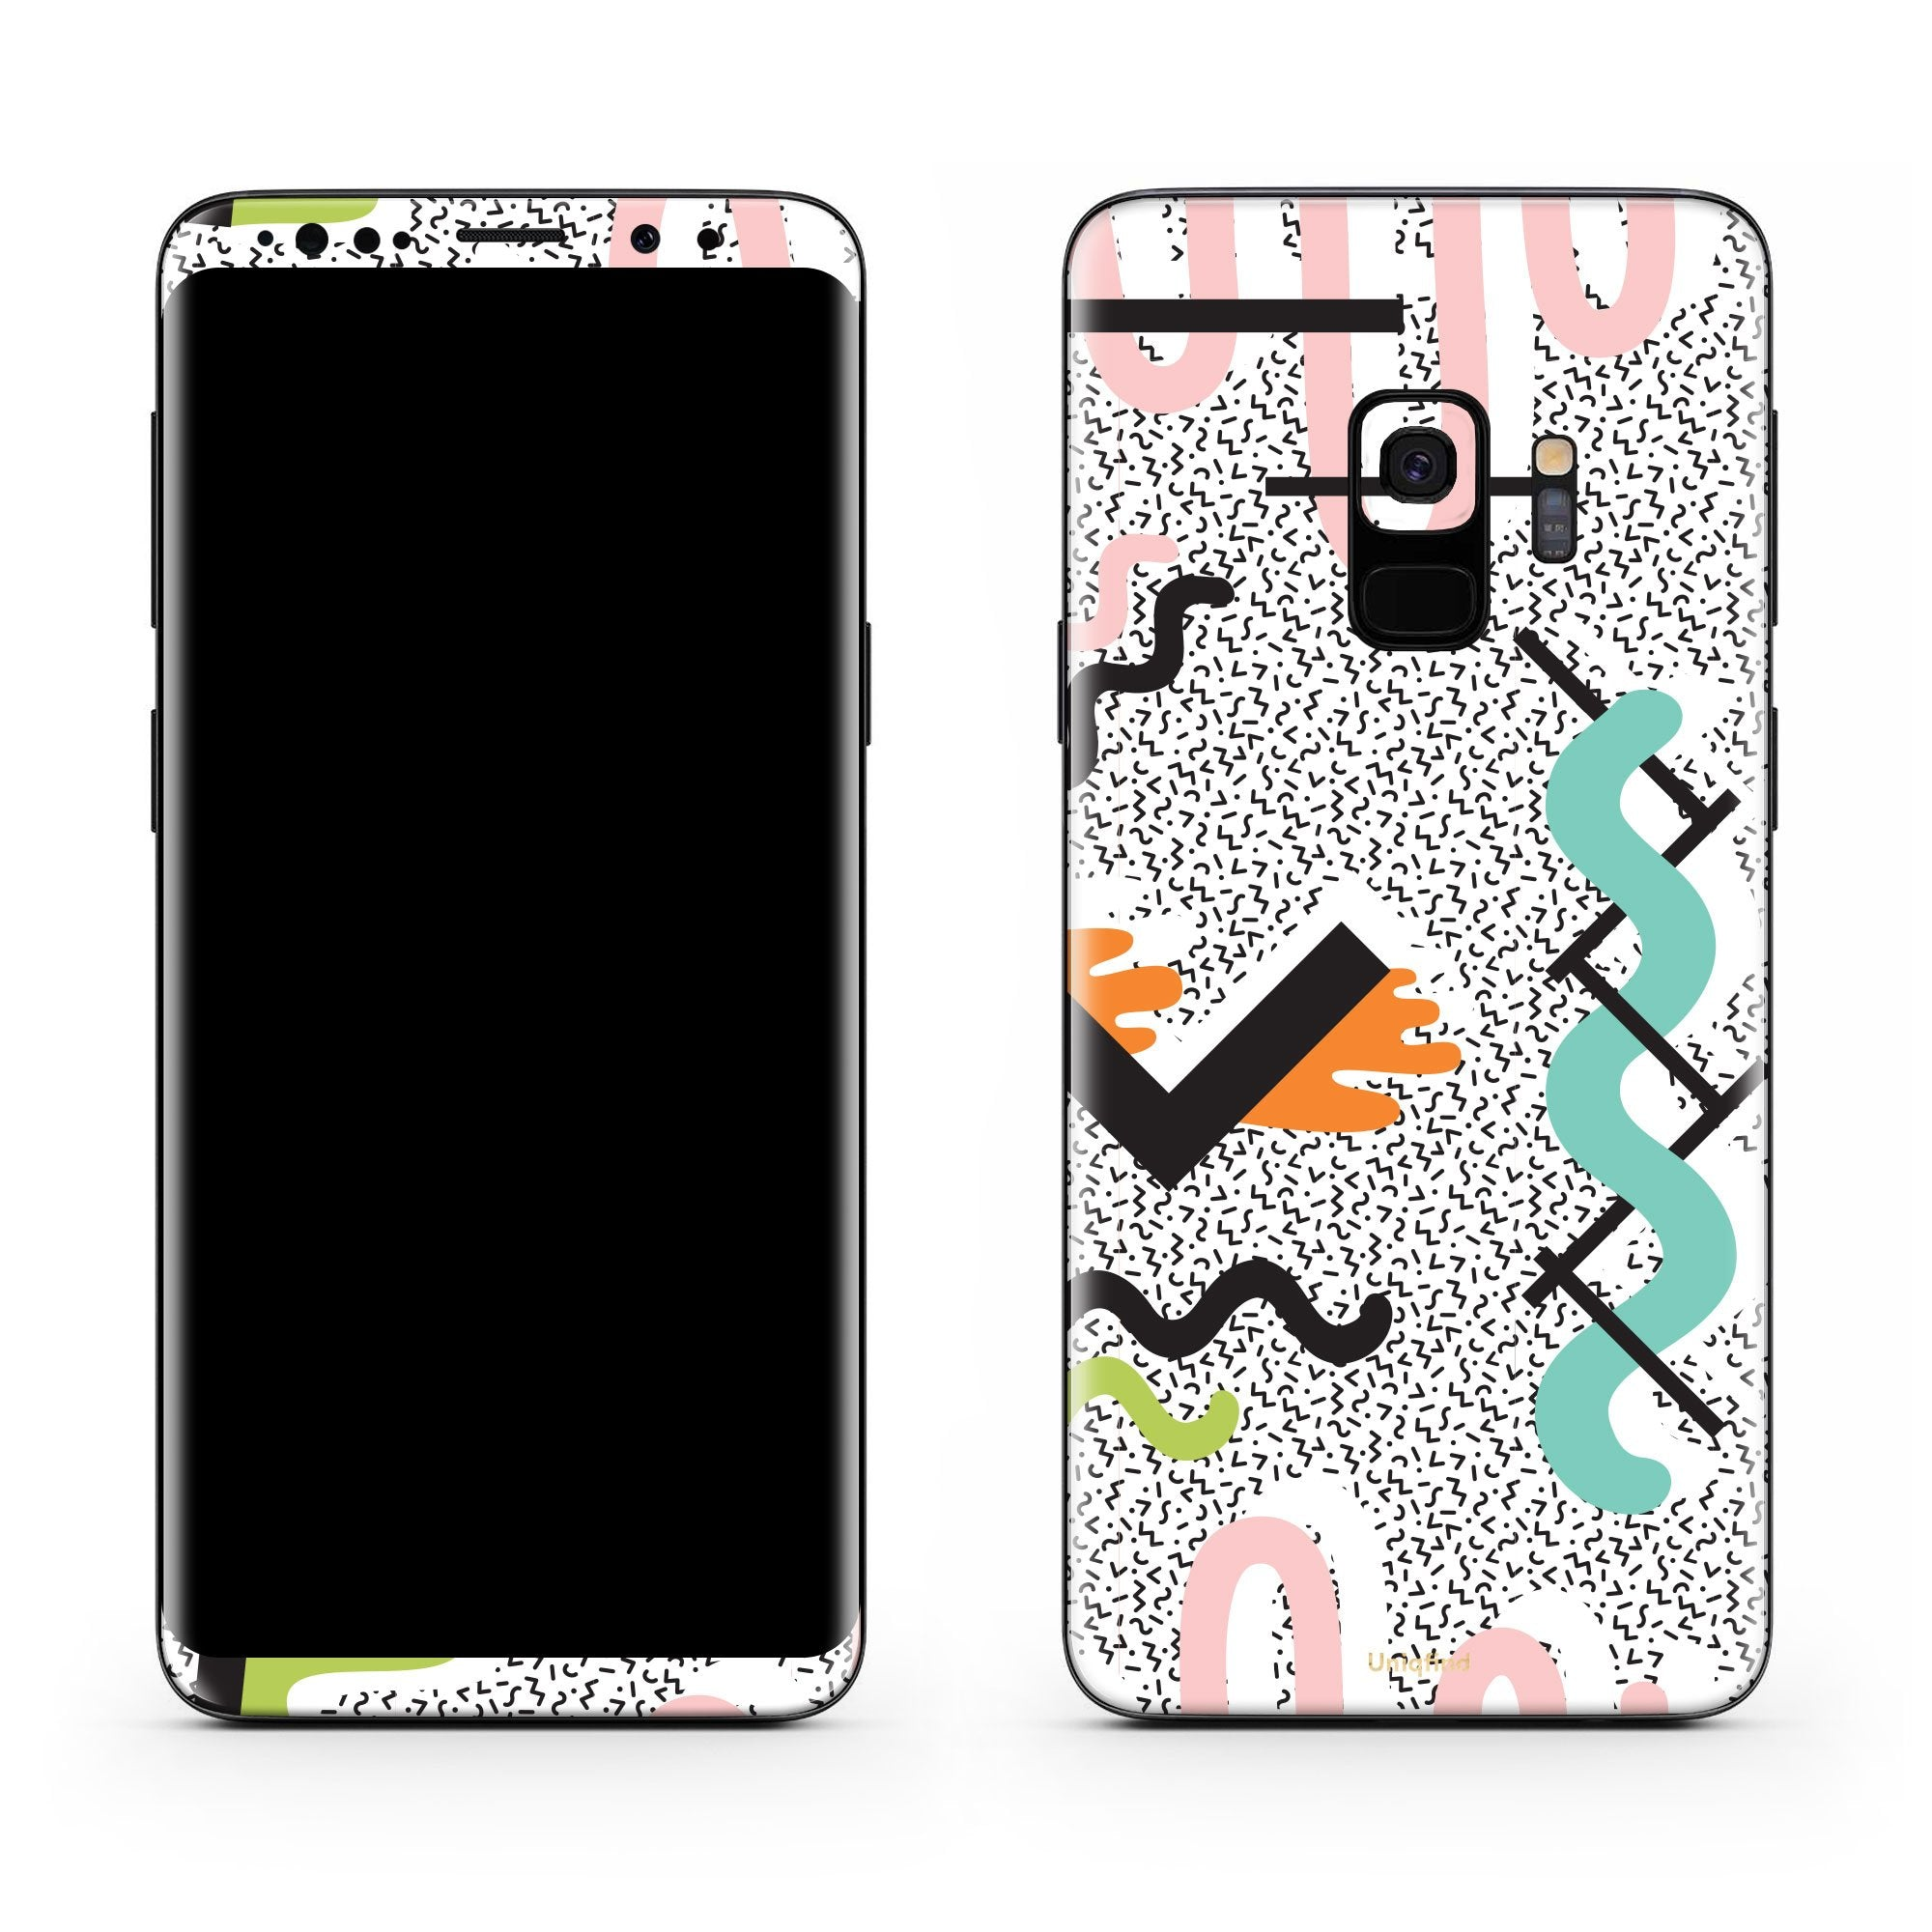 True Memphis Galaxy S9 Skin + Case